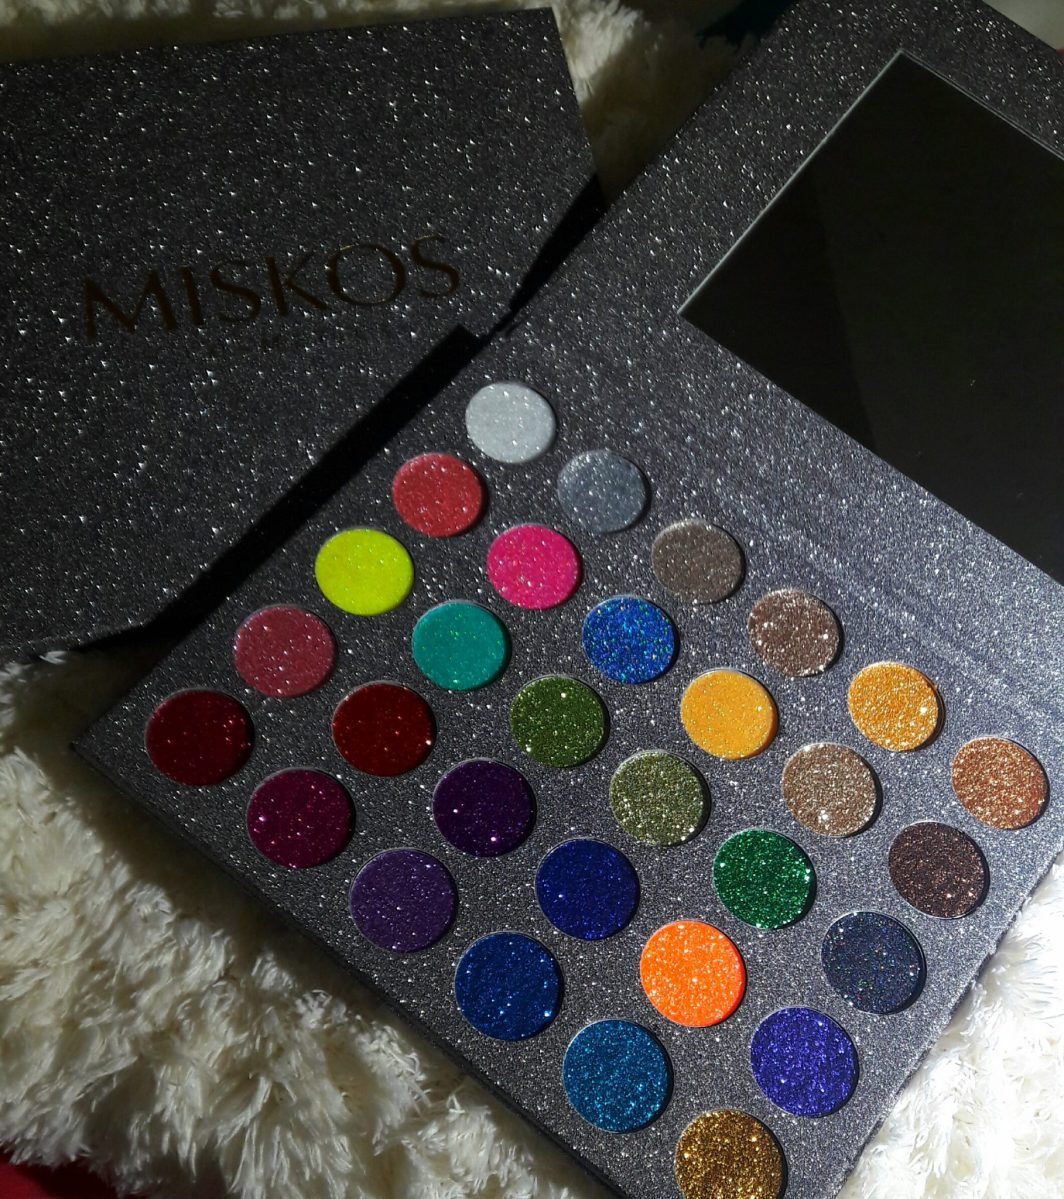 MISKOS 30 Colors Pressed Glitter Eyeshadow Palette Review